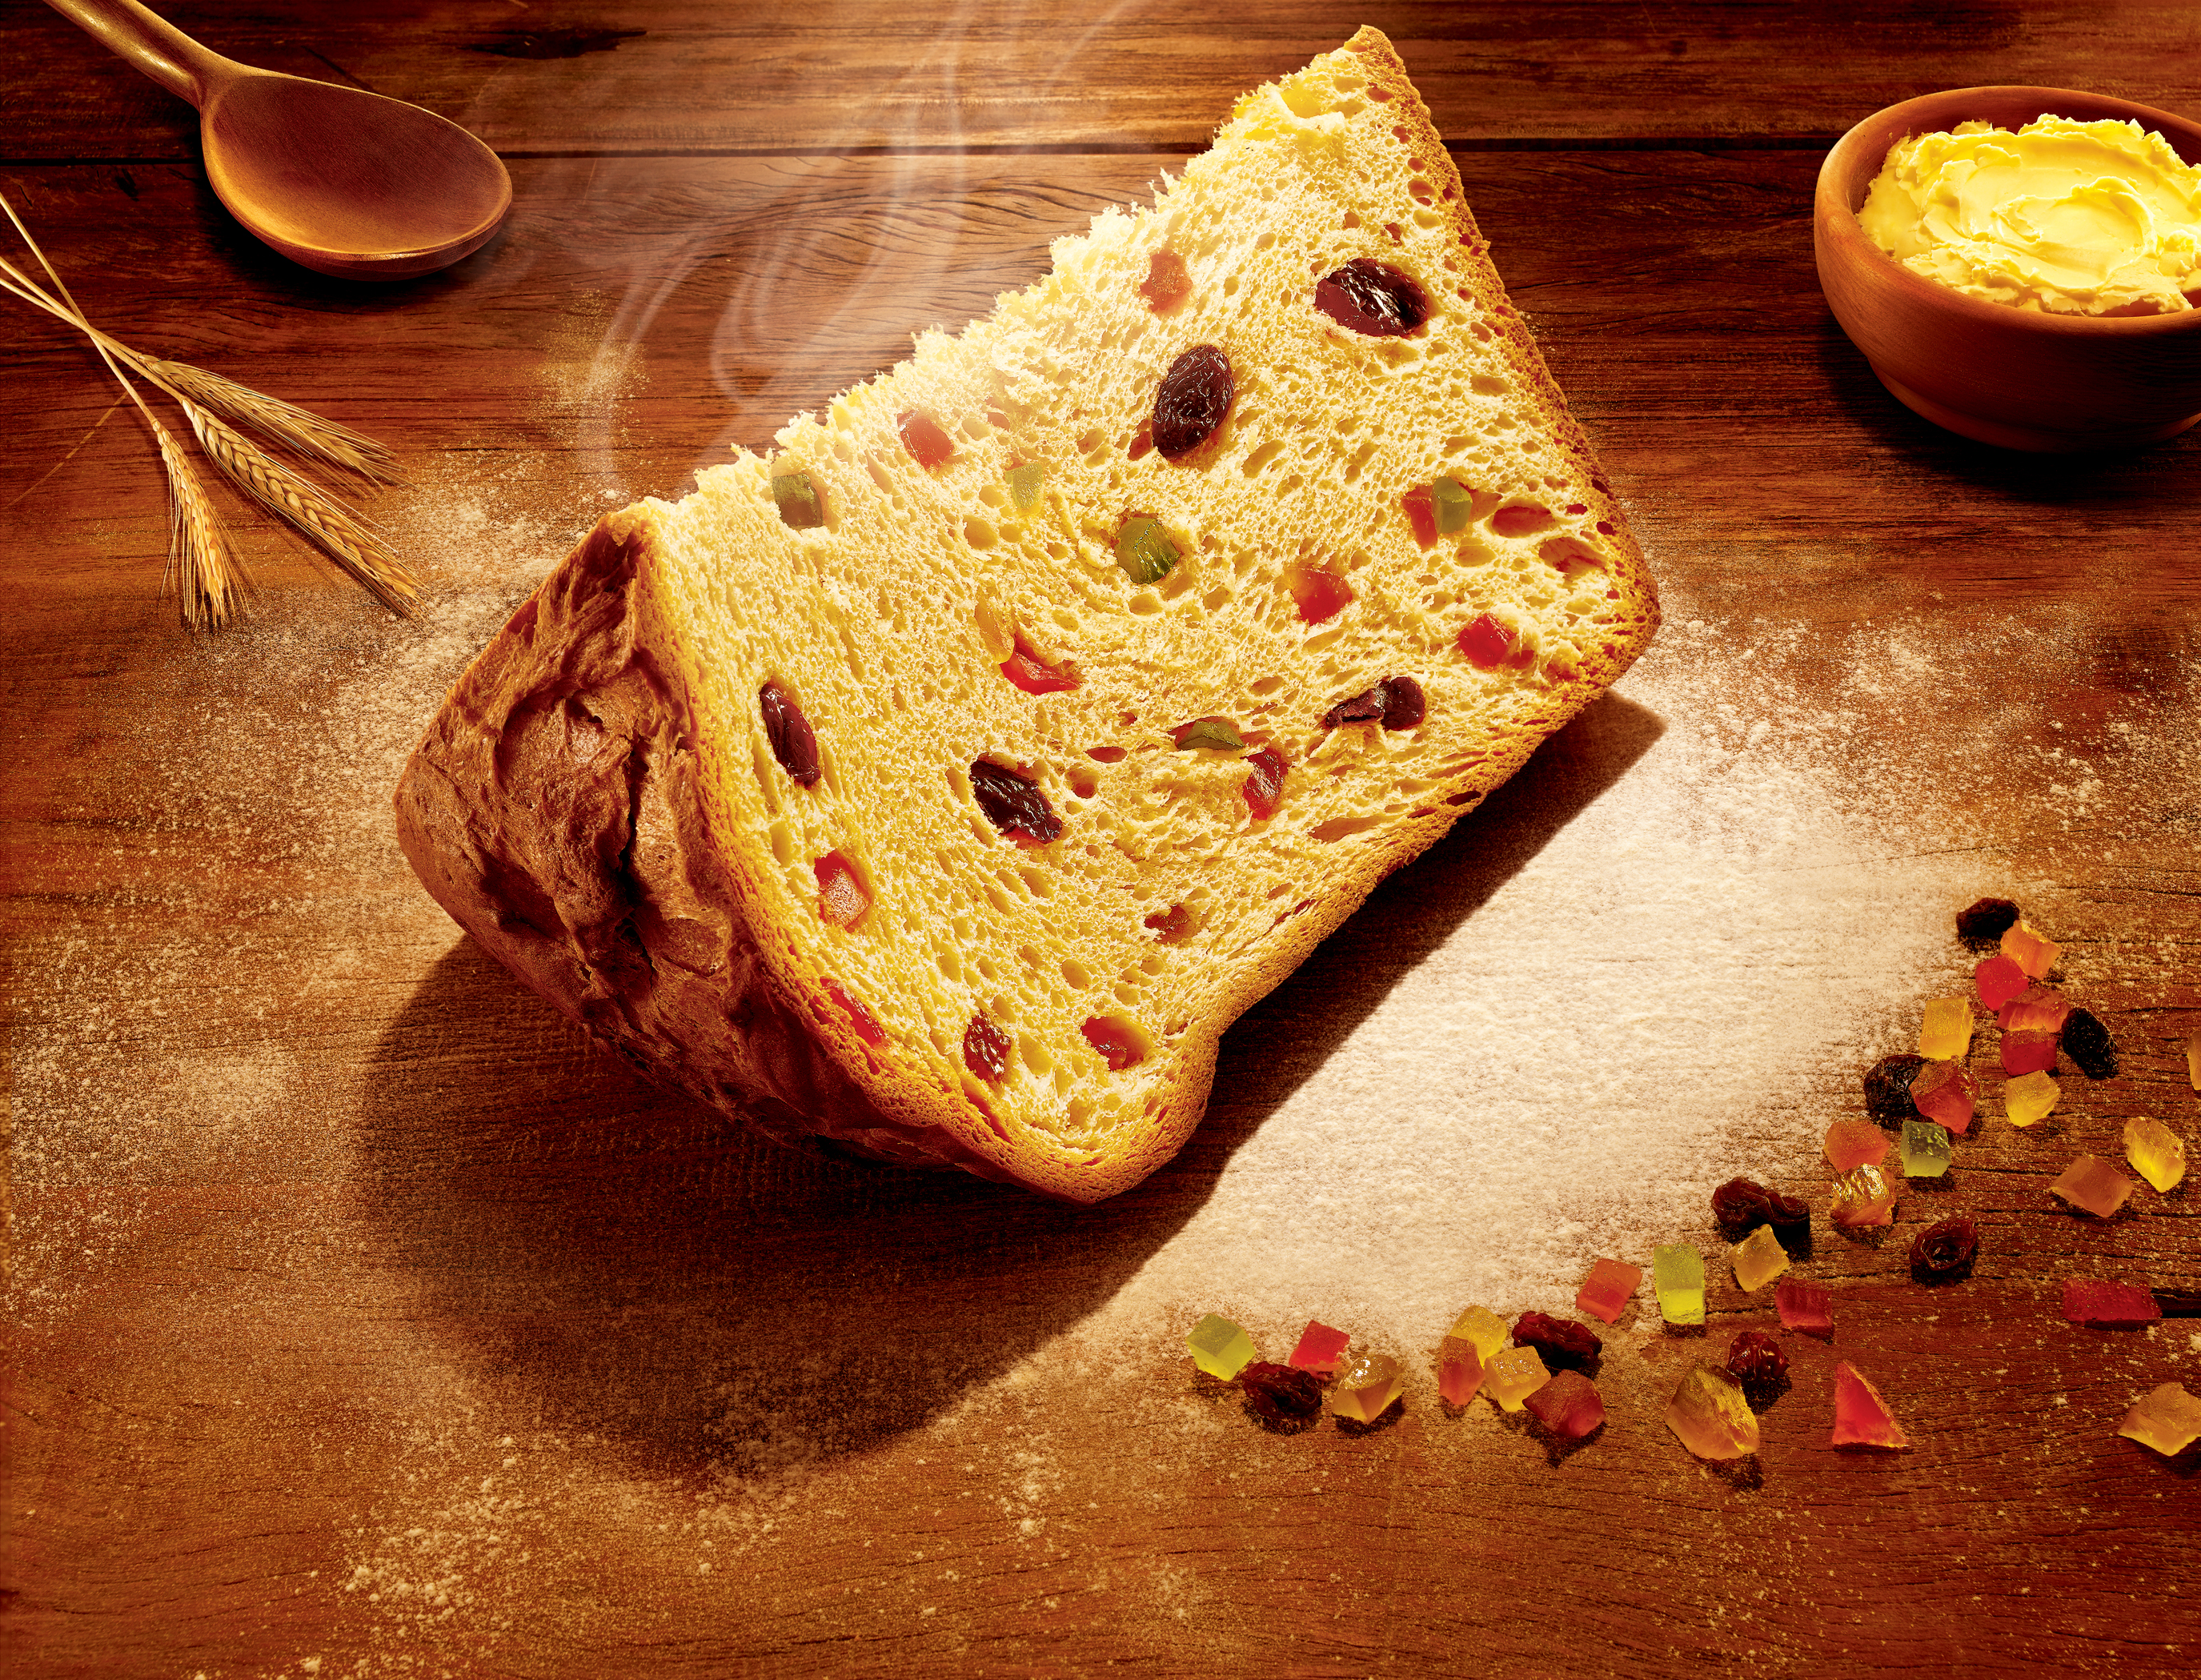 Tis the Season for Panettone! Bauducco Panettone Returns This Holiday!